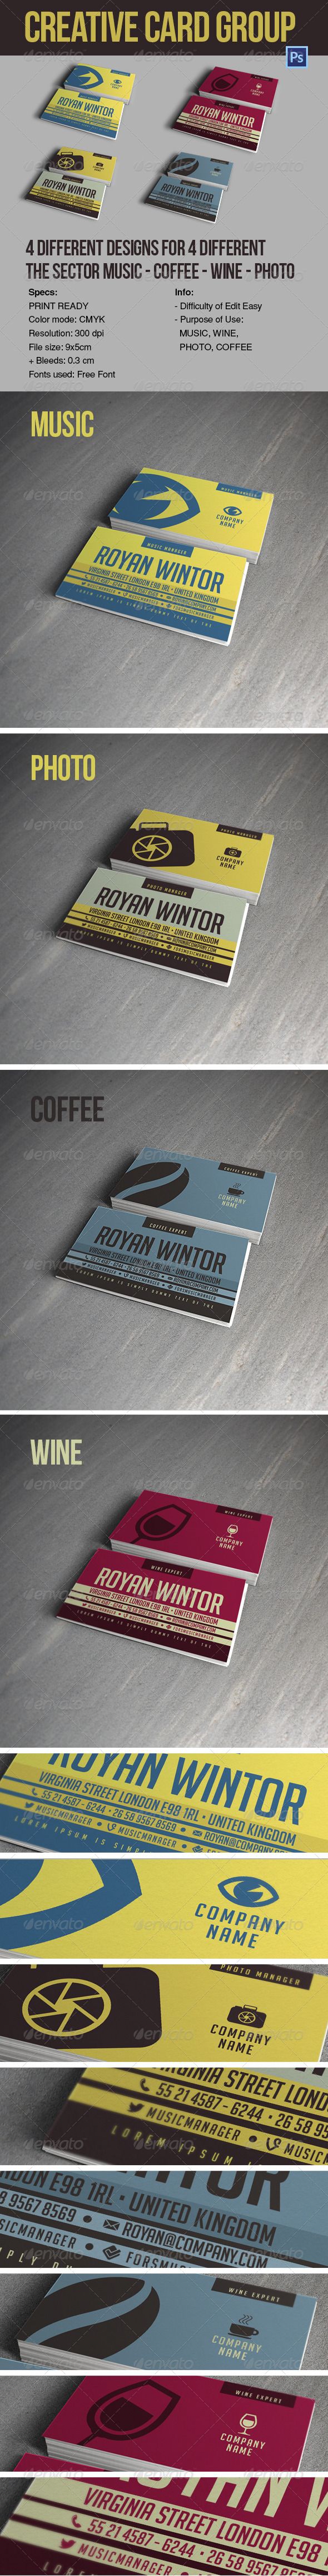 CREATIVE CARD GROUP YMC DESIGN - Creative Business Cards